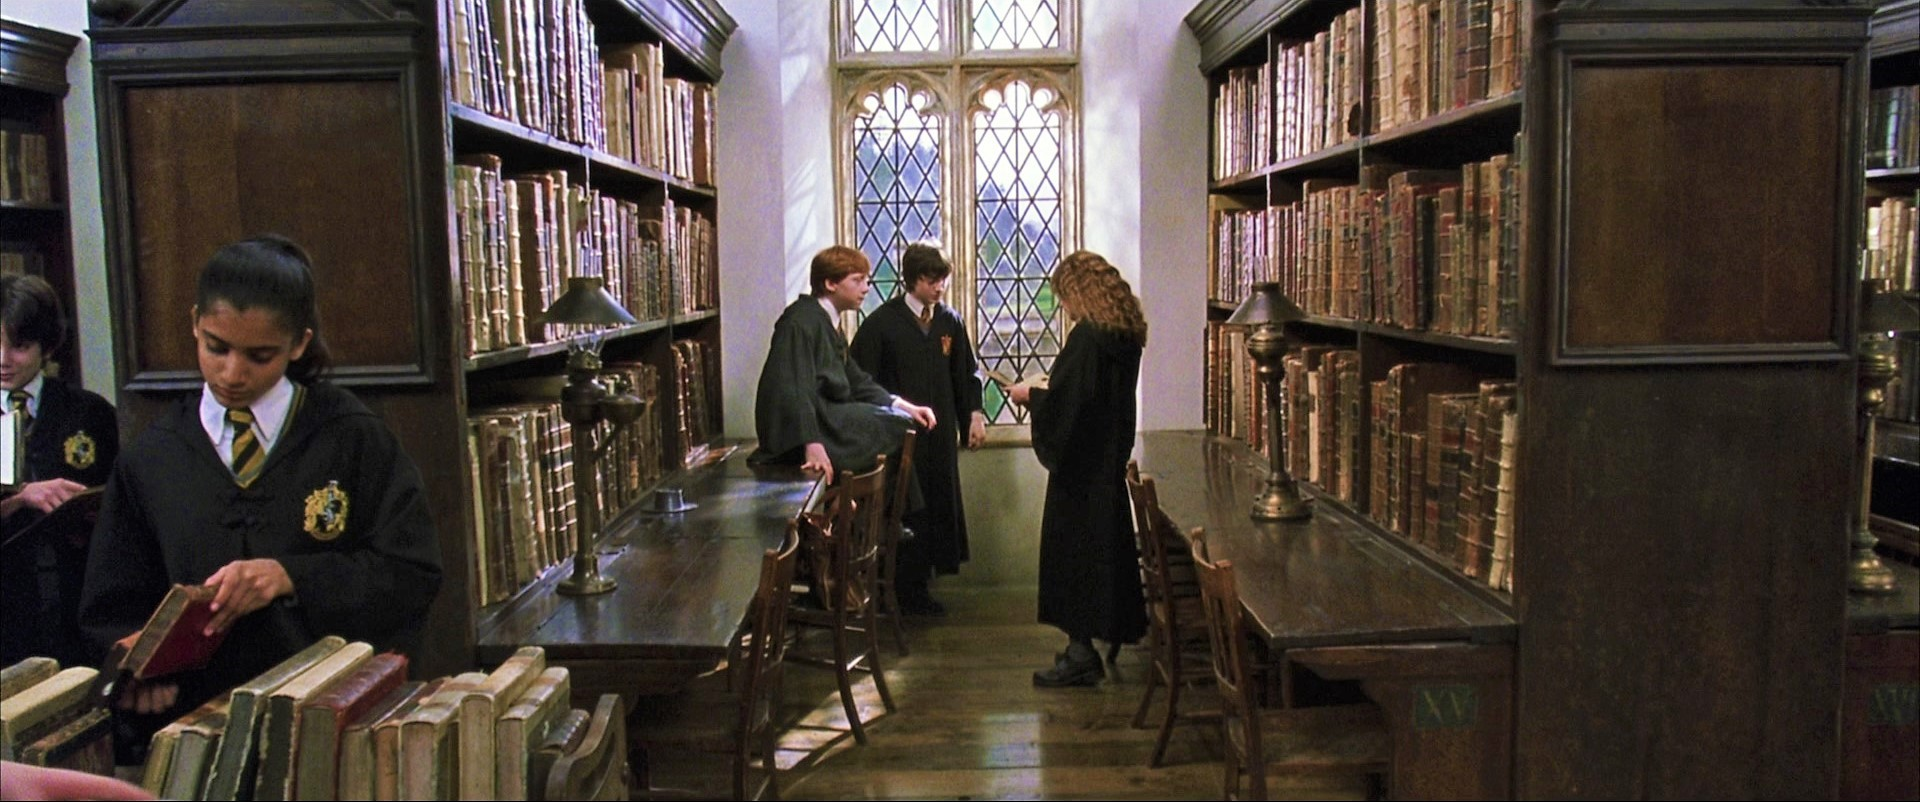 Harry-potter2-library